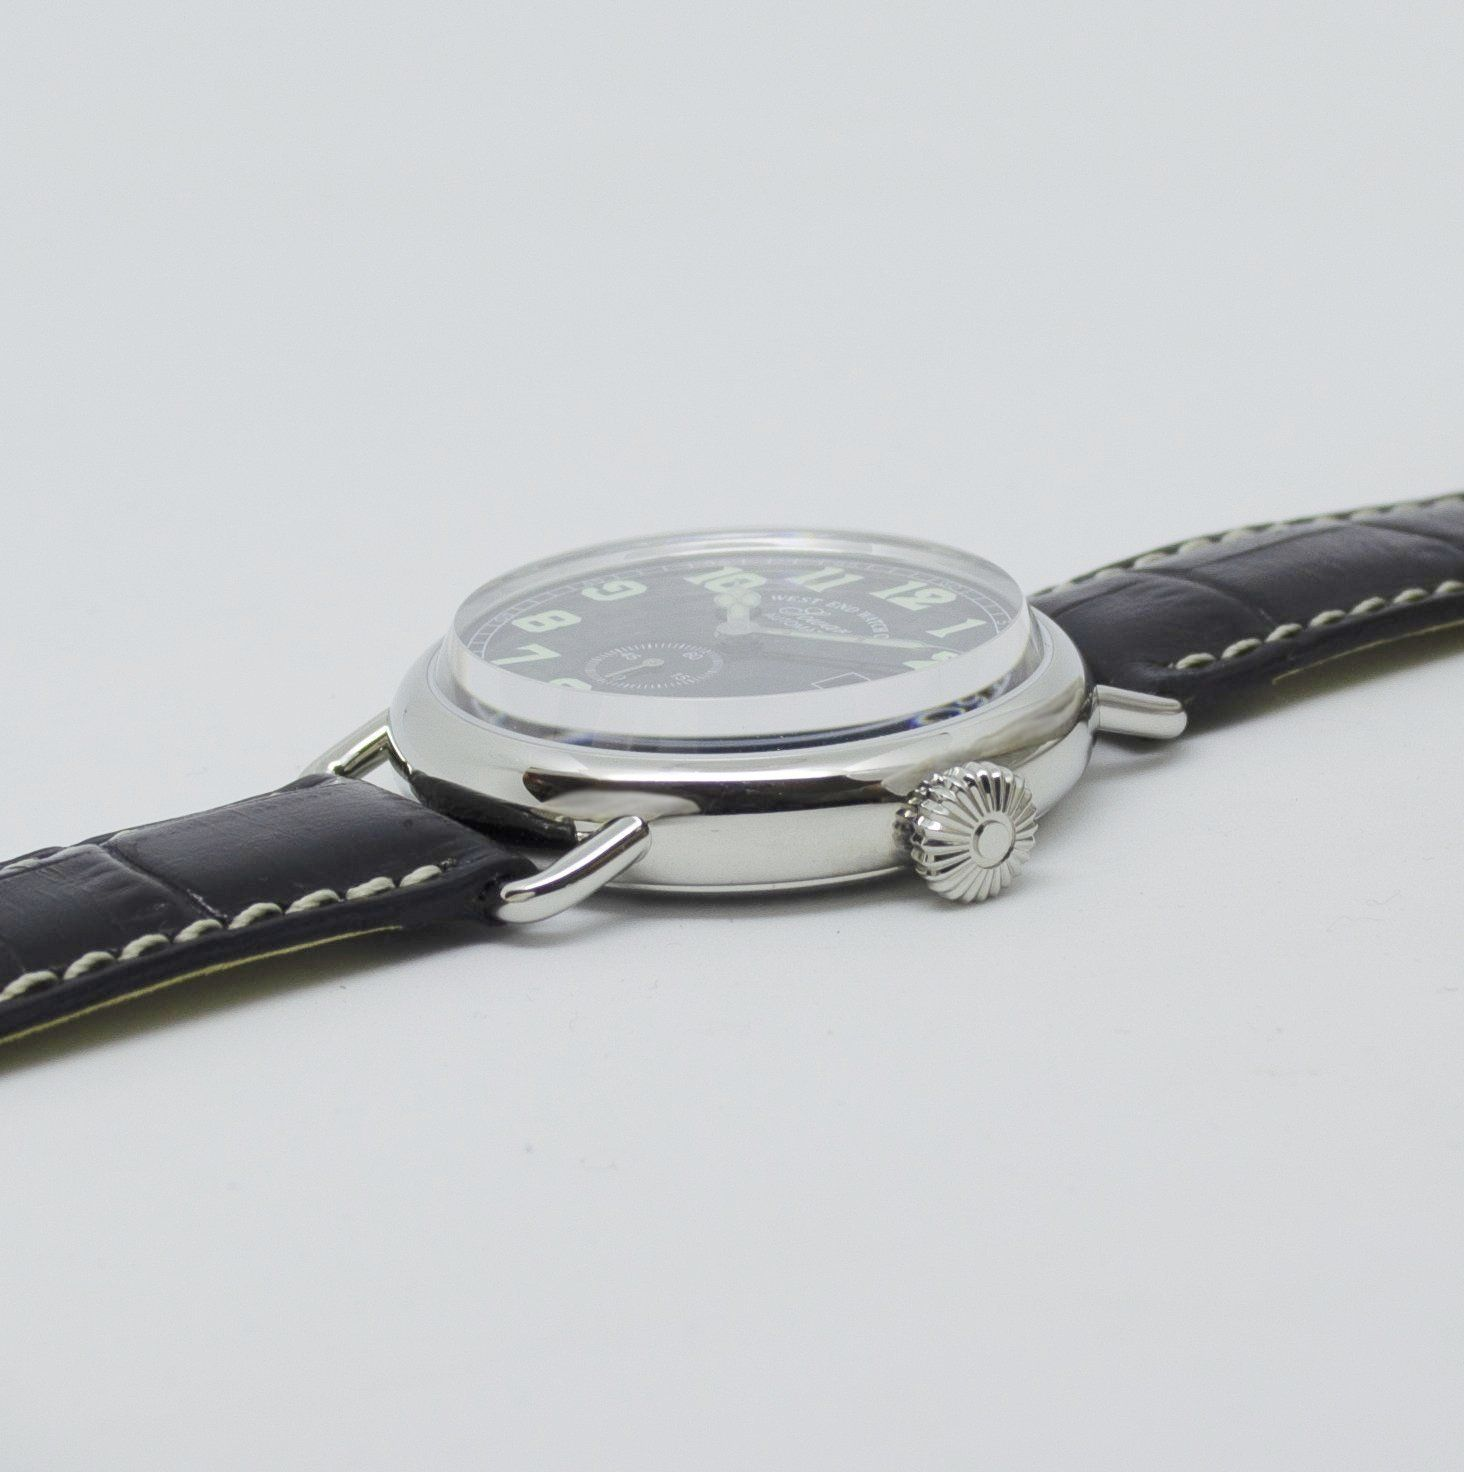 West End Watch Co. Sowar 1916 - Black Dial, Silver Case